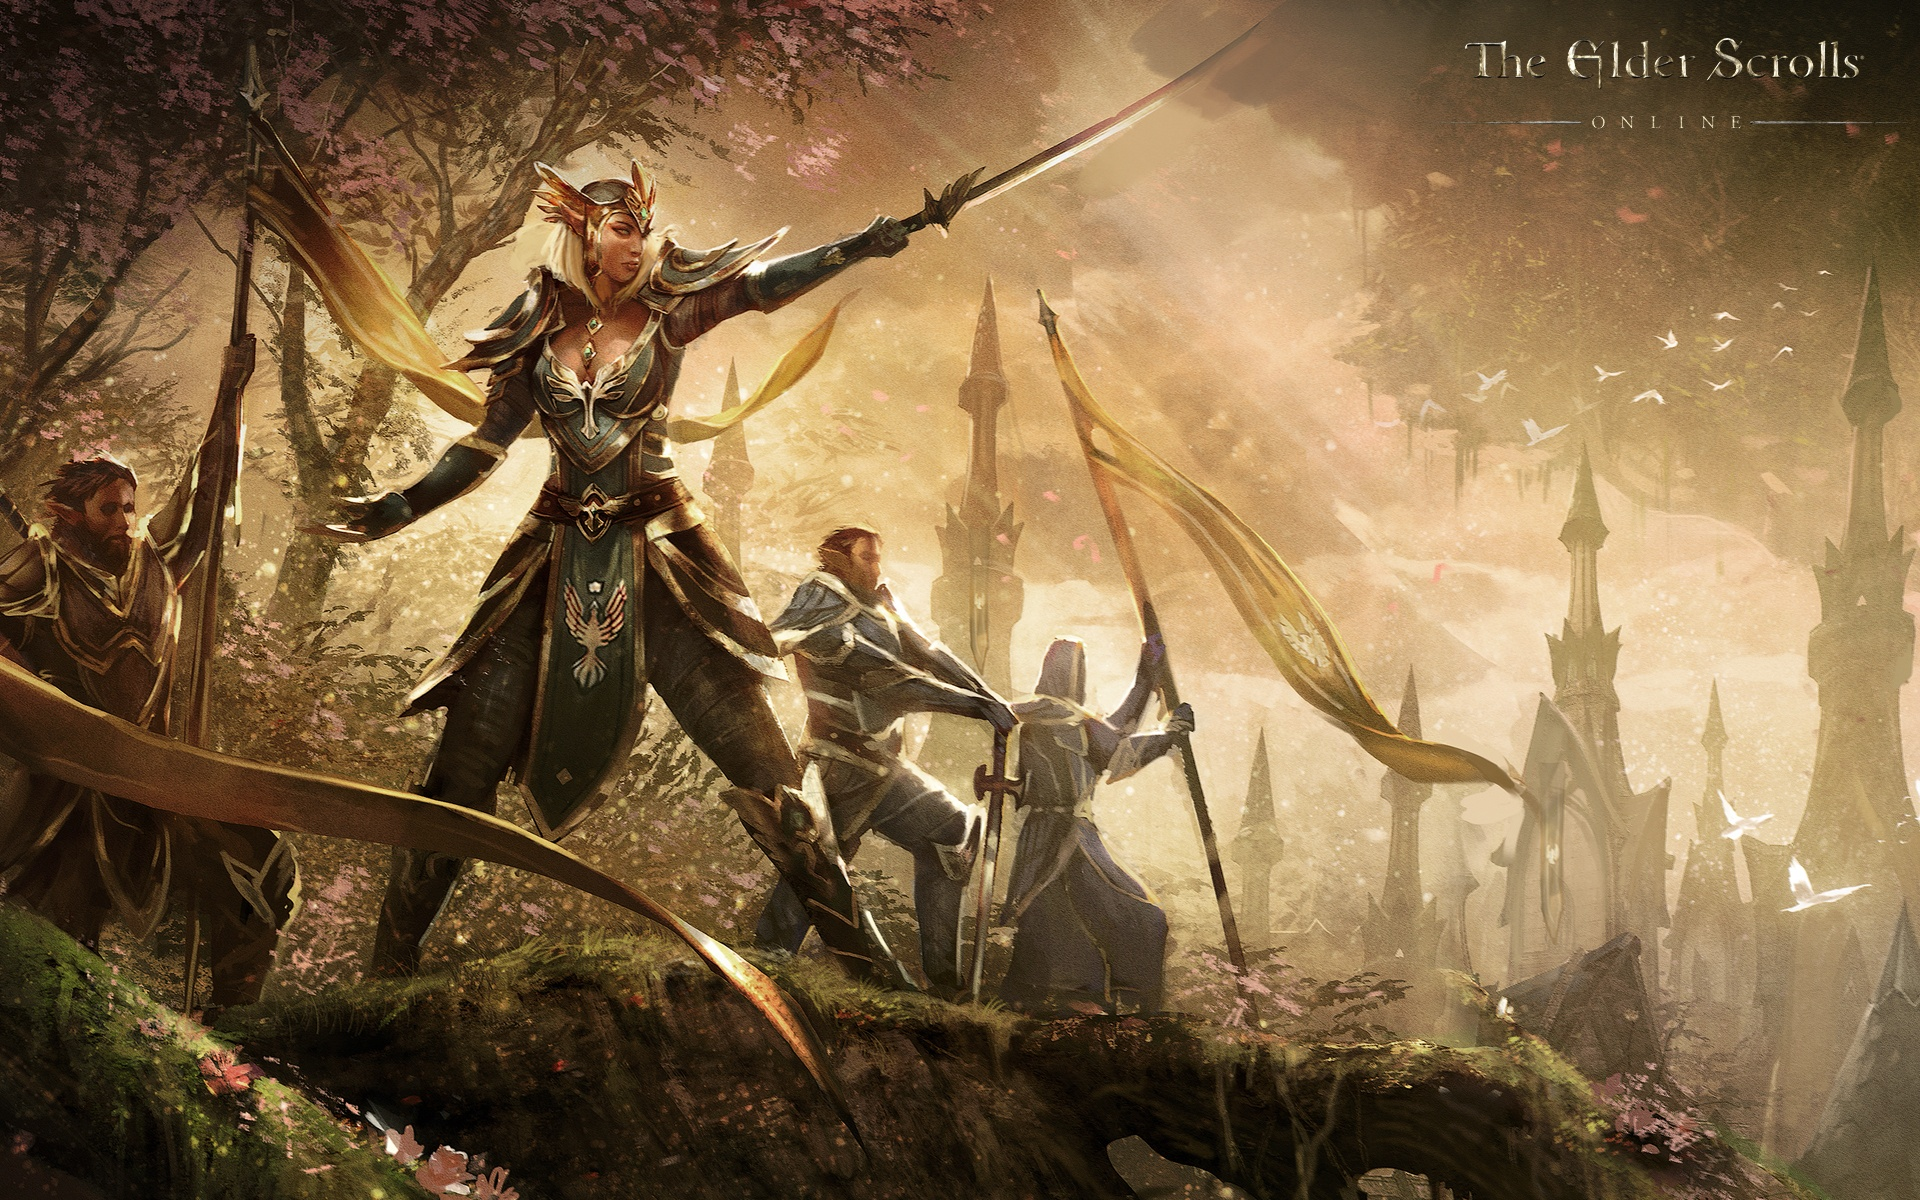 The Elder Scrolls Online Wallpaper 7